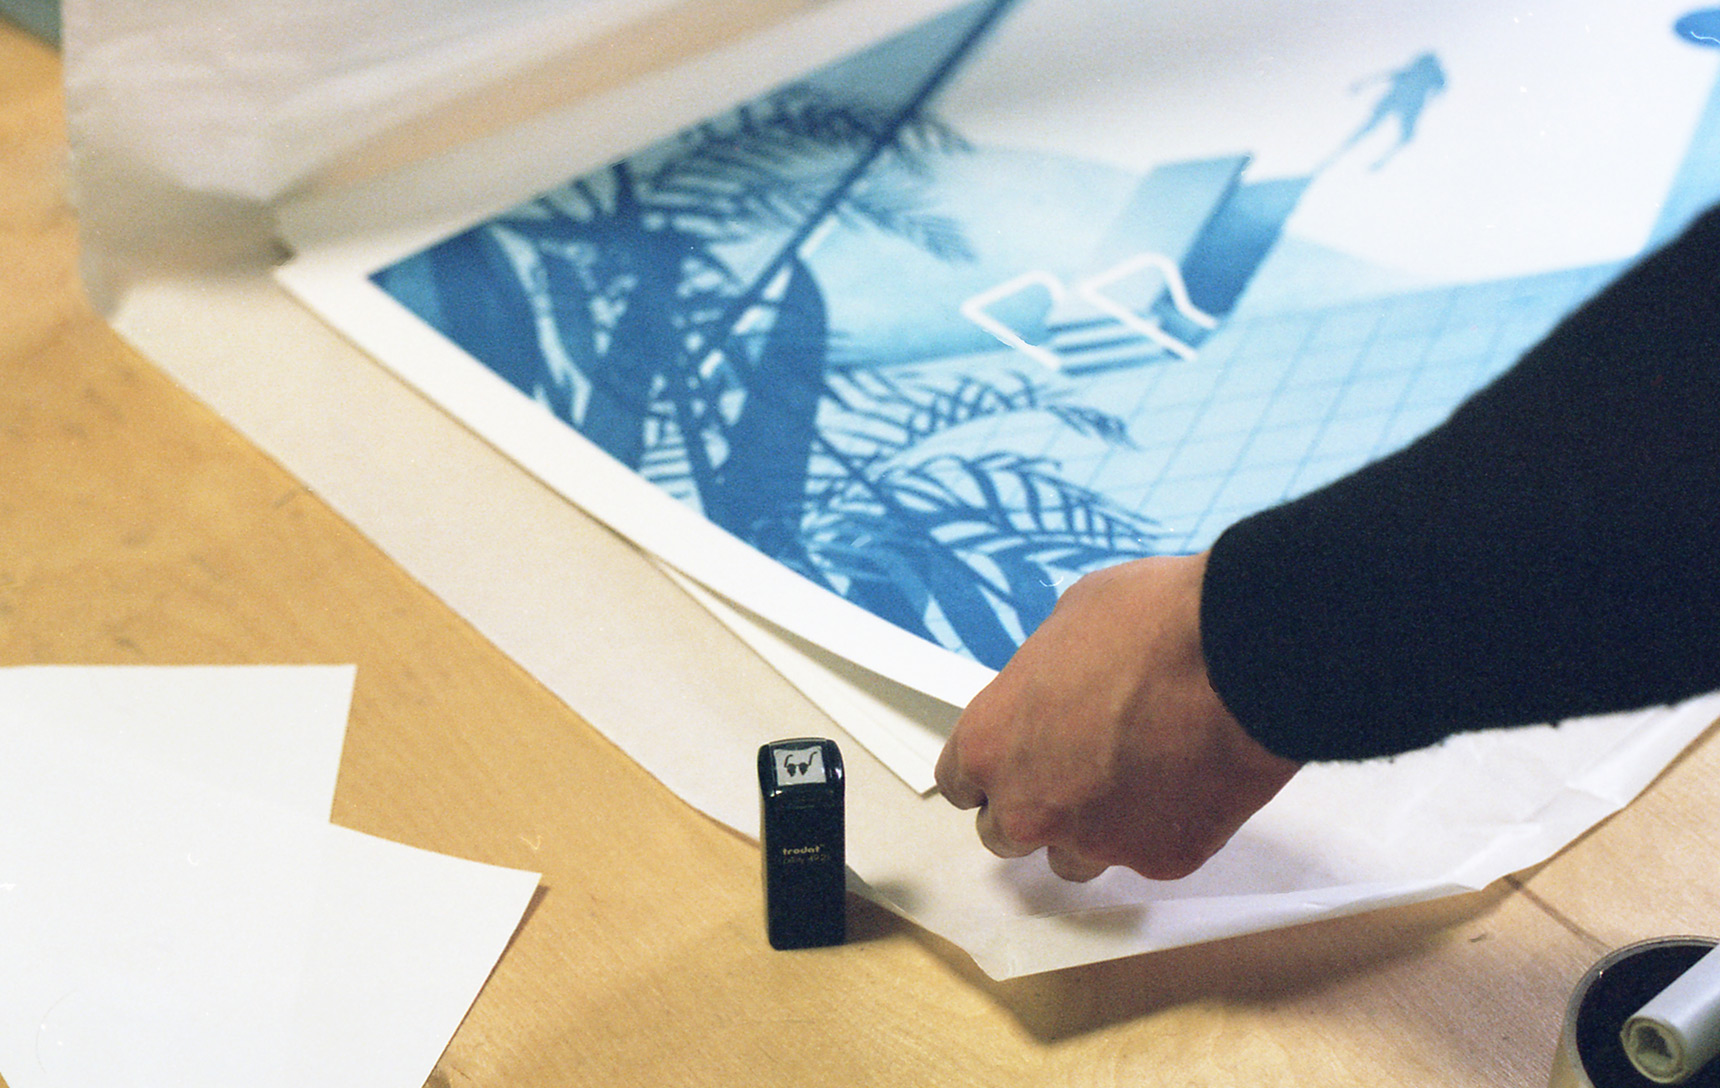 Every print is marked with the logo-stamp.